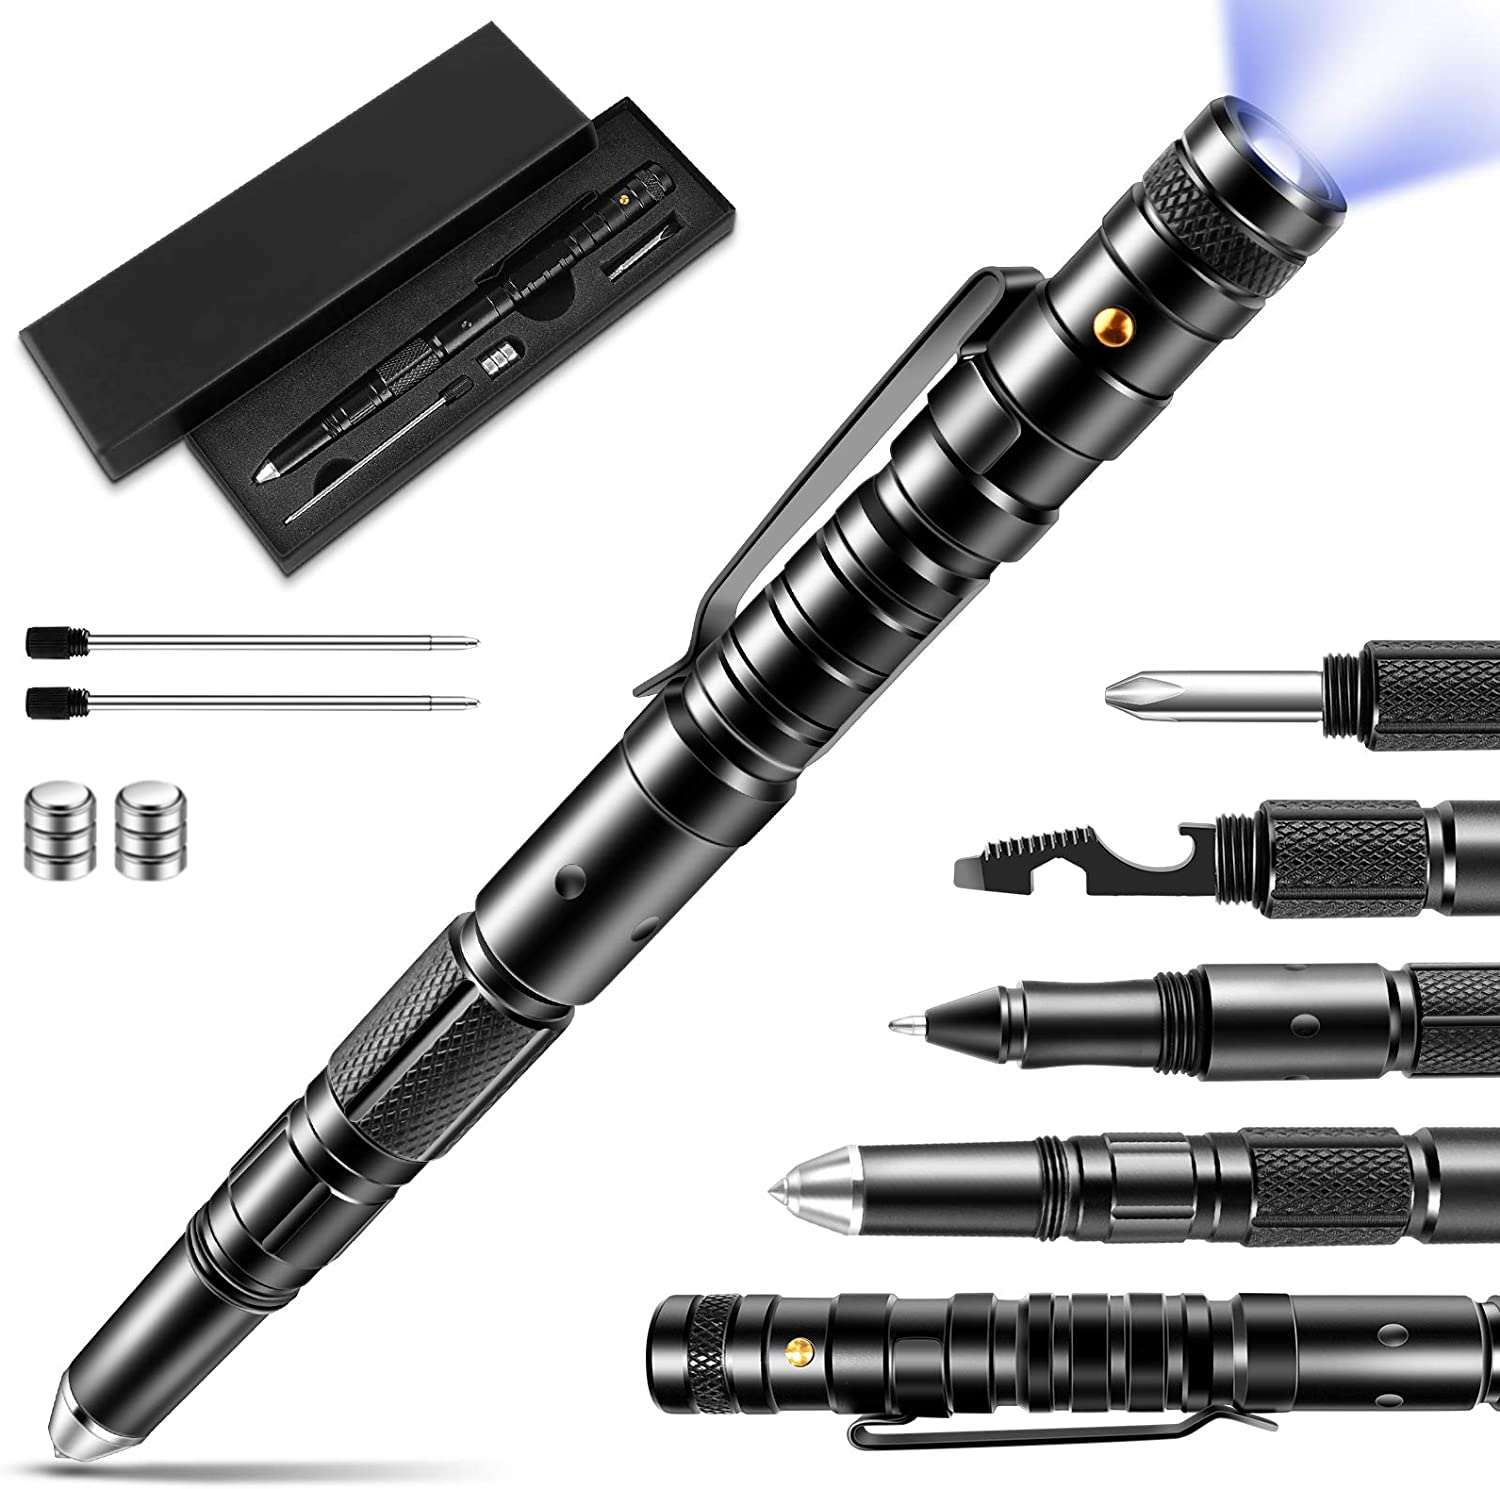 Tactical Pen Gift For Men Gadgets For Men Multitool With Led Flashlight For Women Men Cool Unique Birthday Christmas Gifts Ideas For Him Husband Dad Grandpa With Black Gift Box